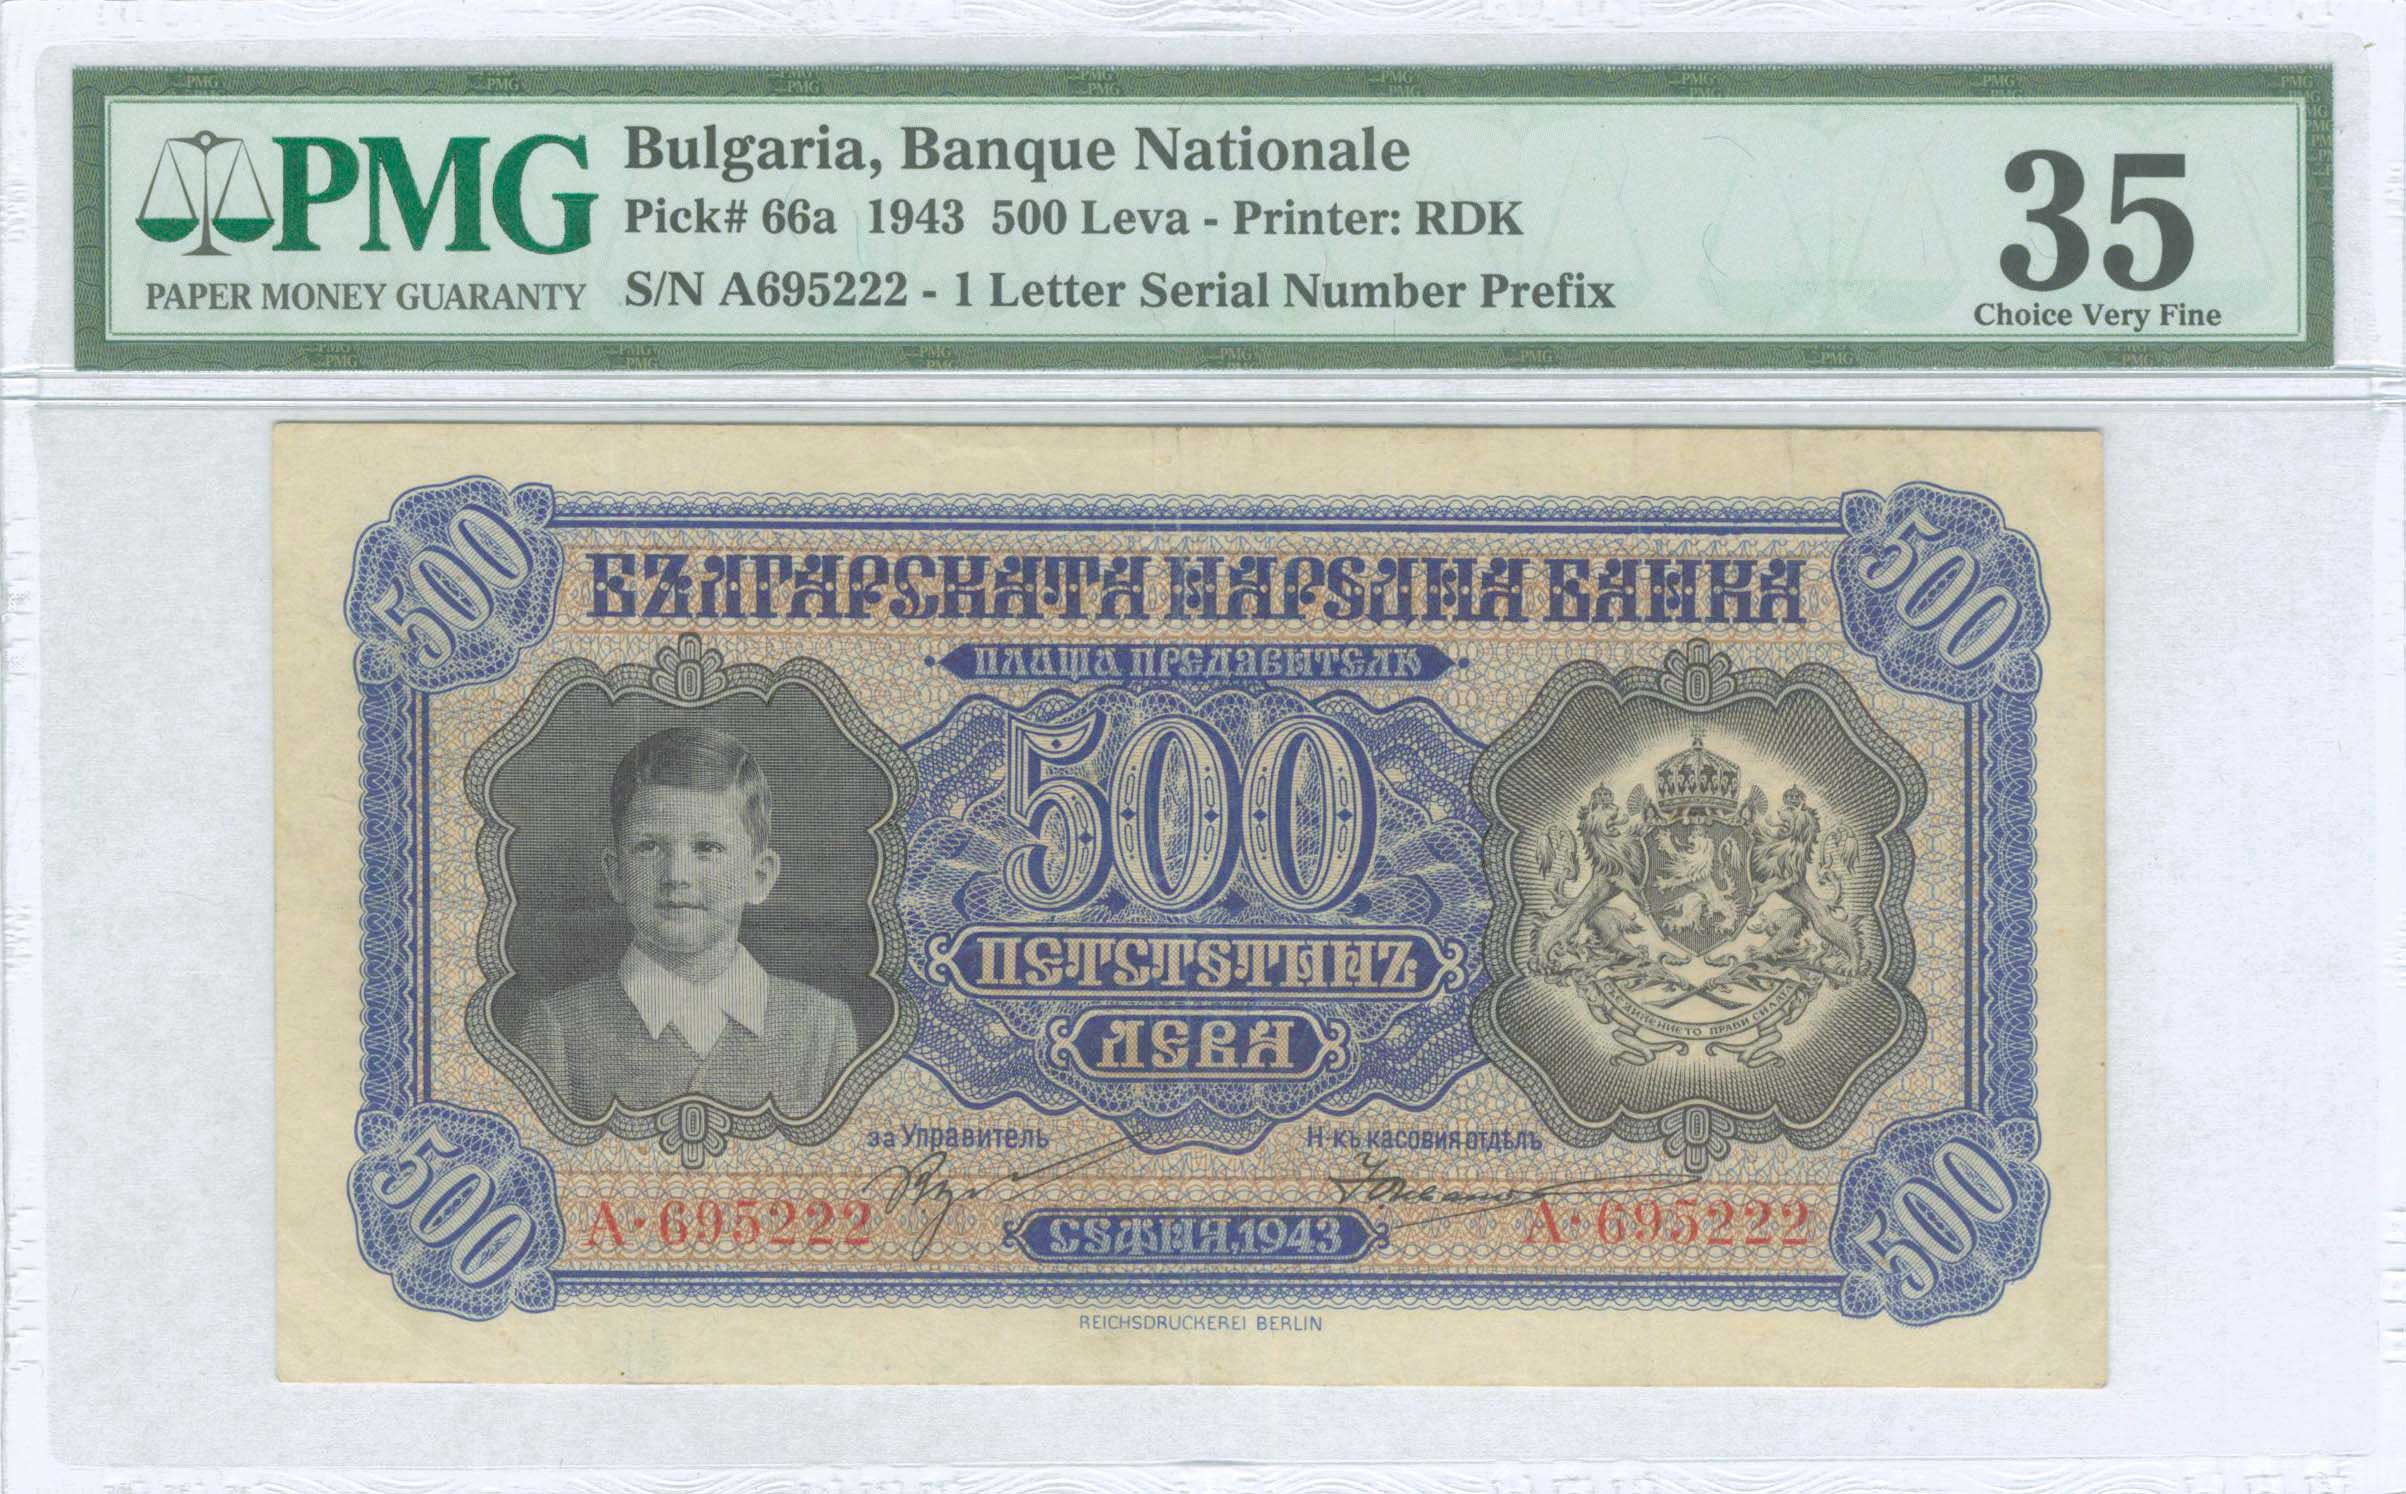 Lot 9422 - GREECE-  PAPER MONEY - BANKNOTES bulgarian occupation wwii -  A. Karamitsos Public & LIVE Bid Auction 610 Coins, Medals & Banknotes